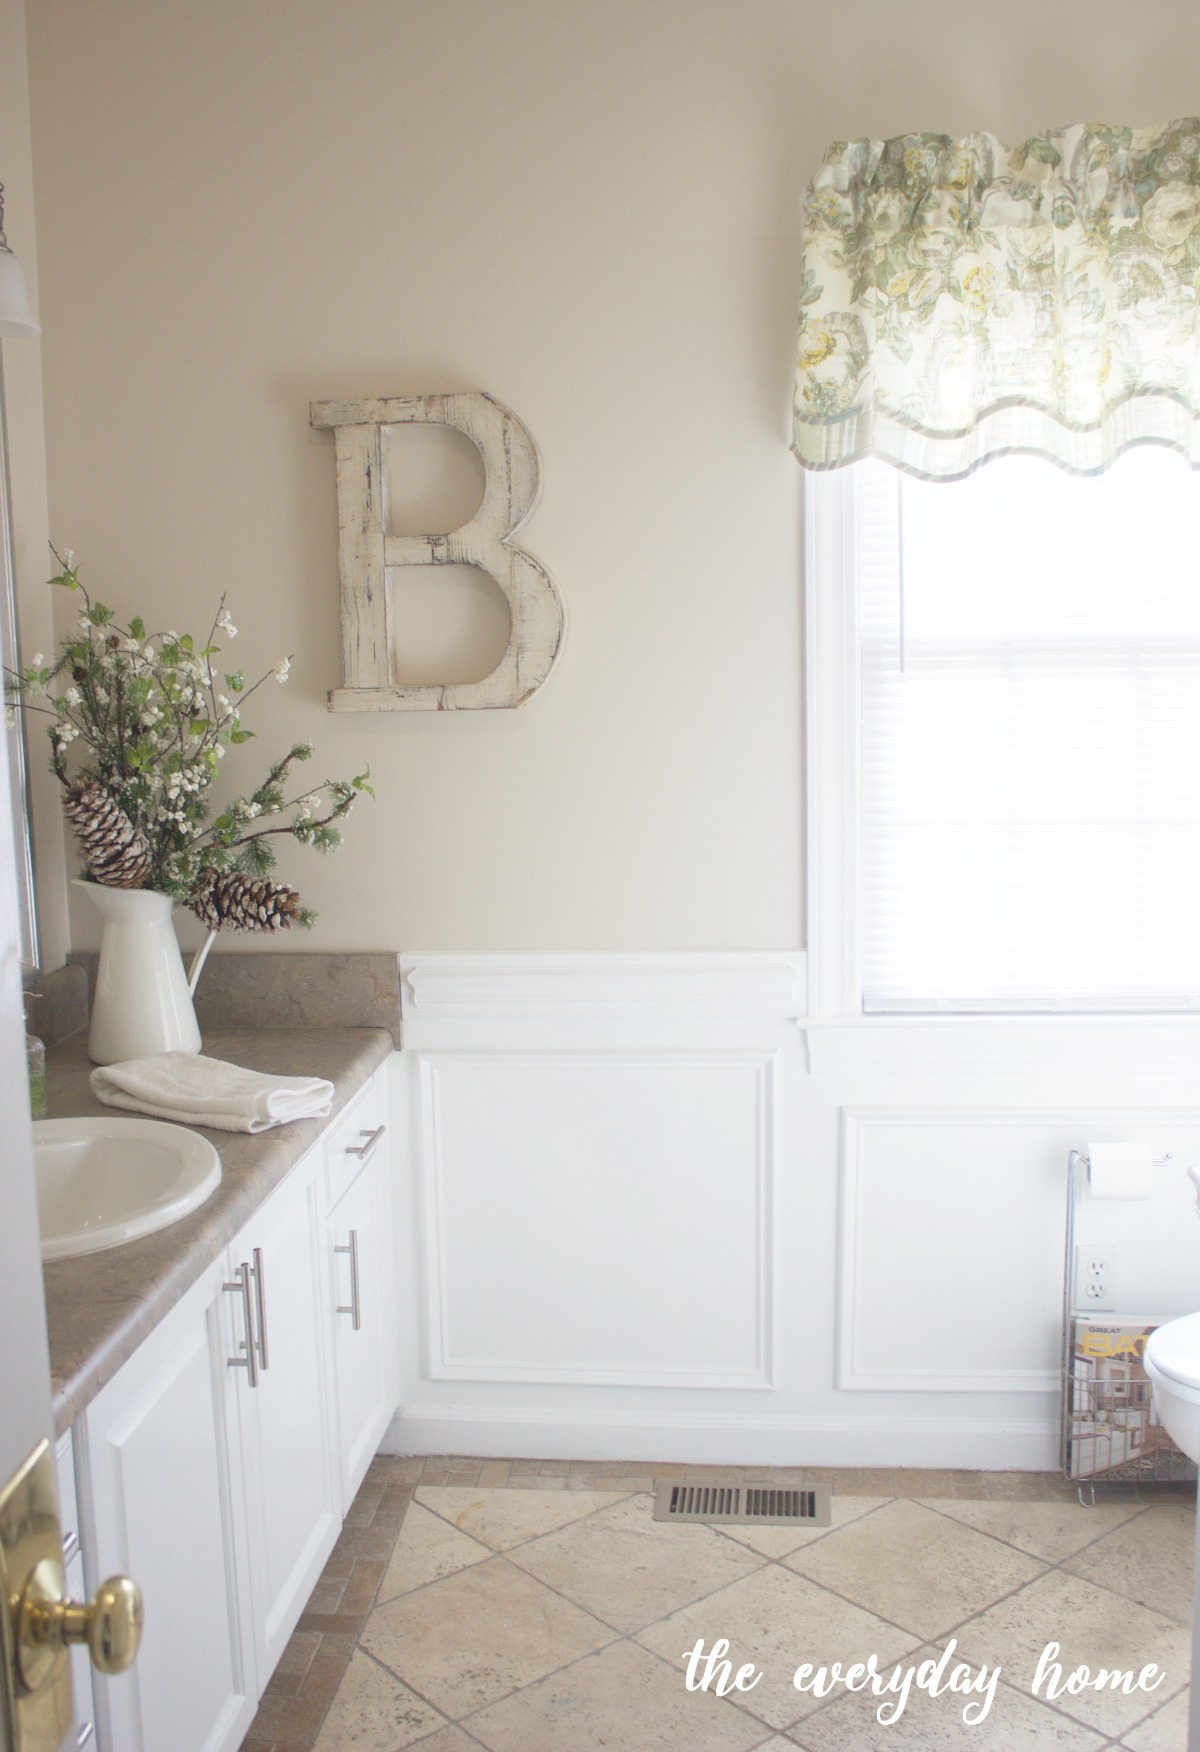 Guest Bathroom Design Plan - The Everyday Home